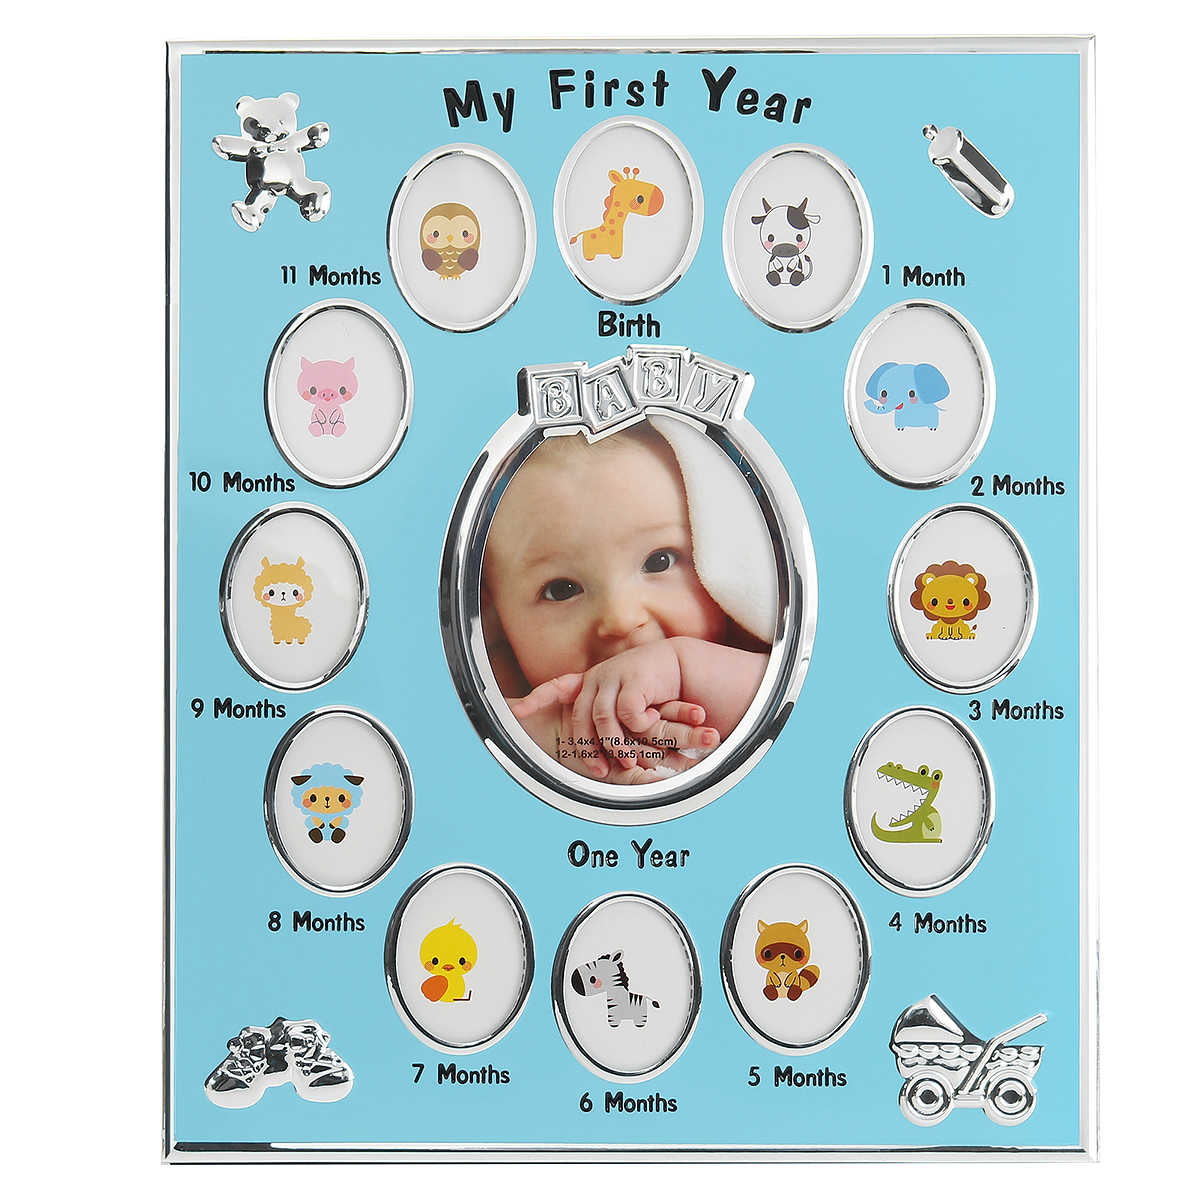 Baby Kids Birthday Gift Decorations From 1 To 12 Month Year Photo Frame Picture Frame Christening Gift Home Decor